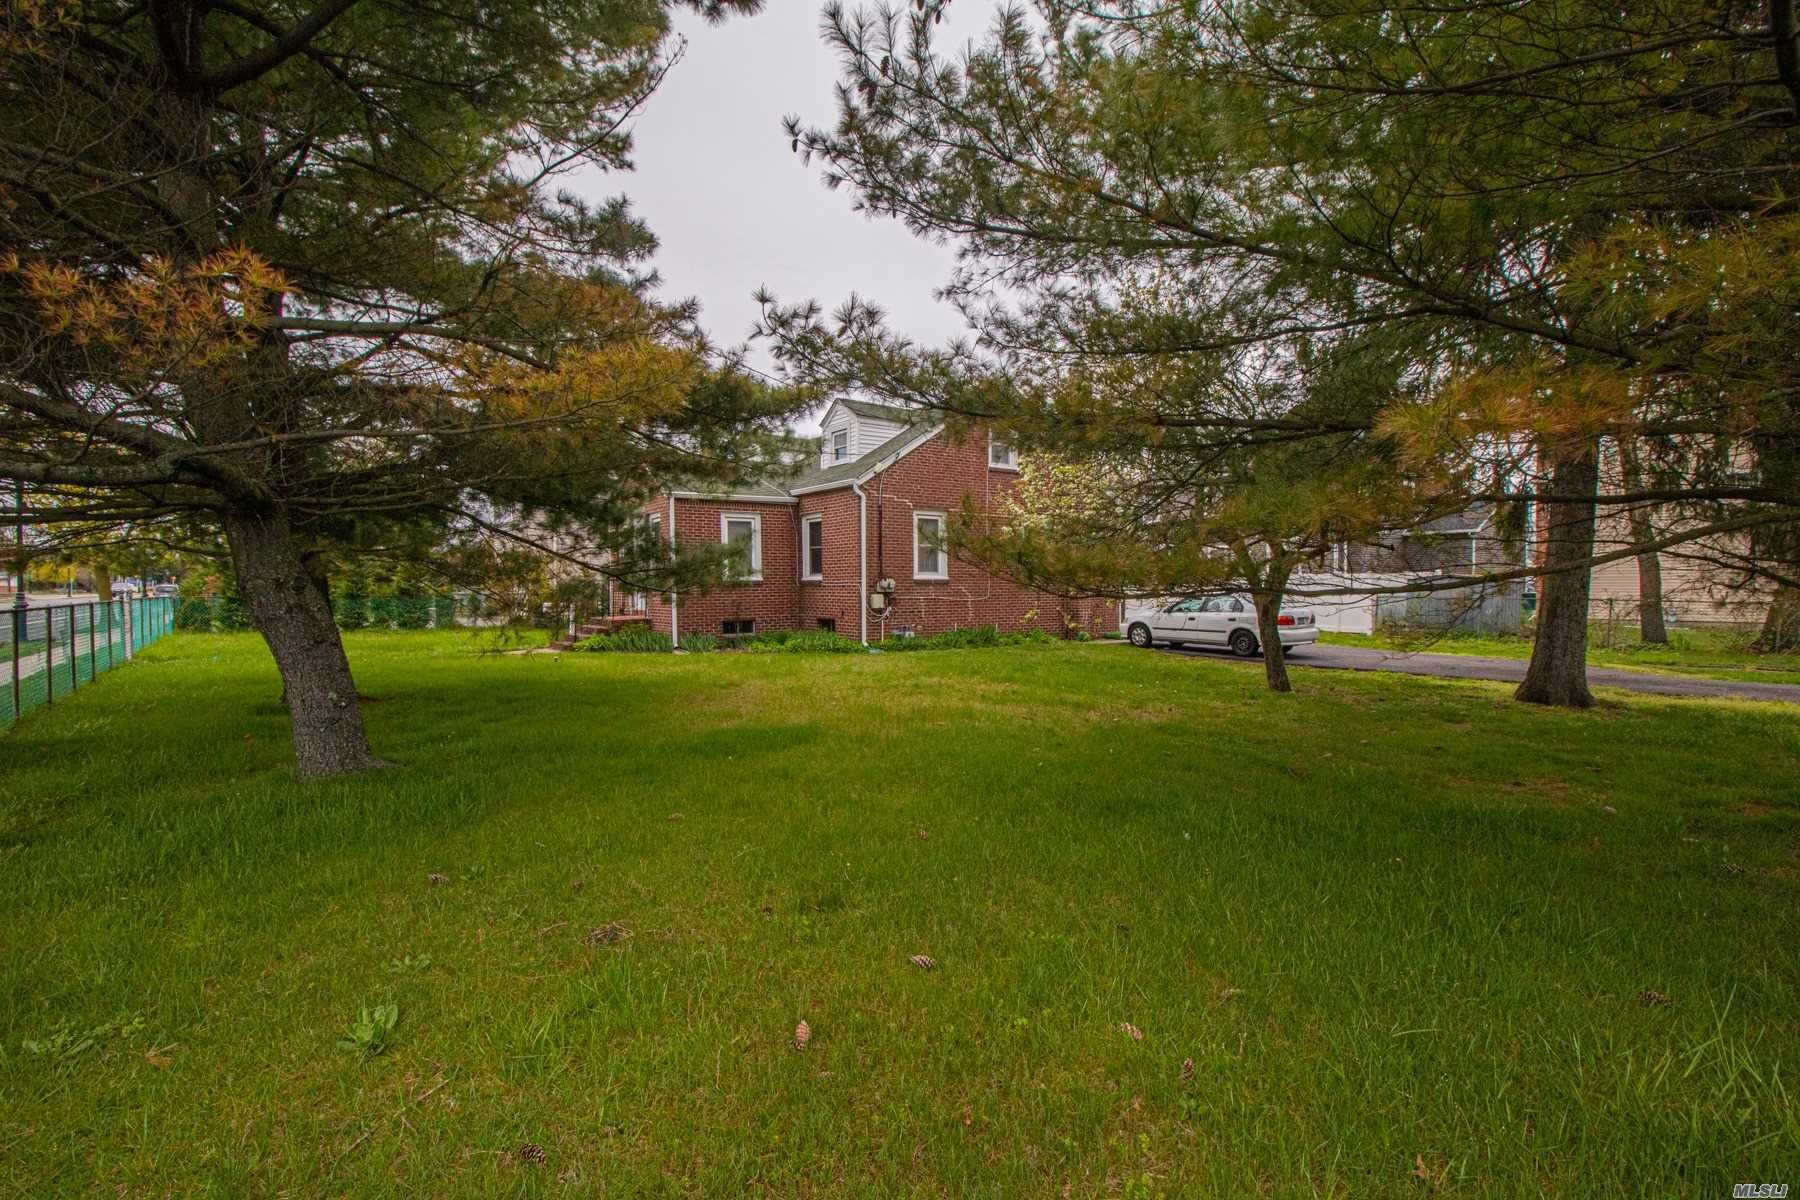 2140 Great Neck Rd, Copiague, NY 11726 - MLS#: 3213457